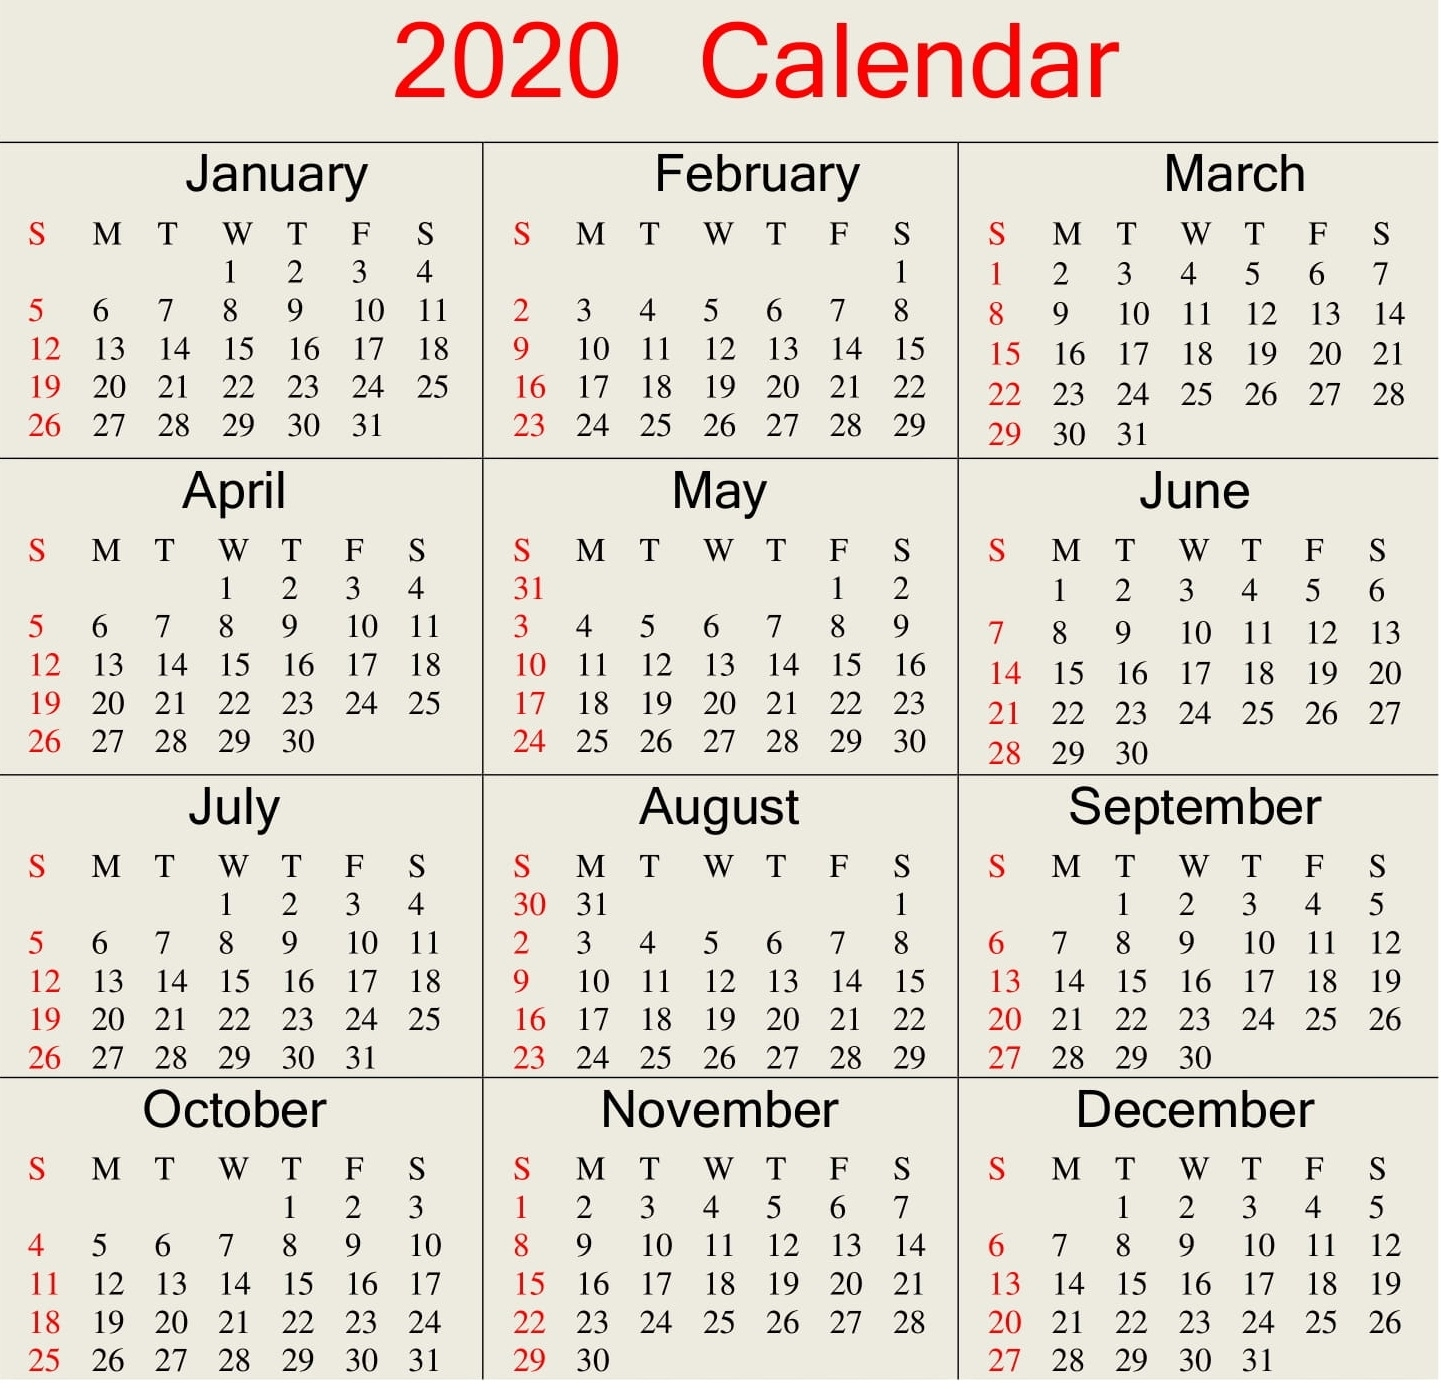 Julian Date Calendar For Year 2020 | Calendar For Planning